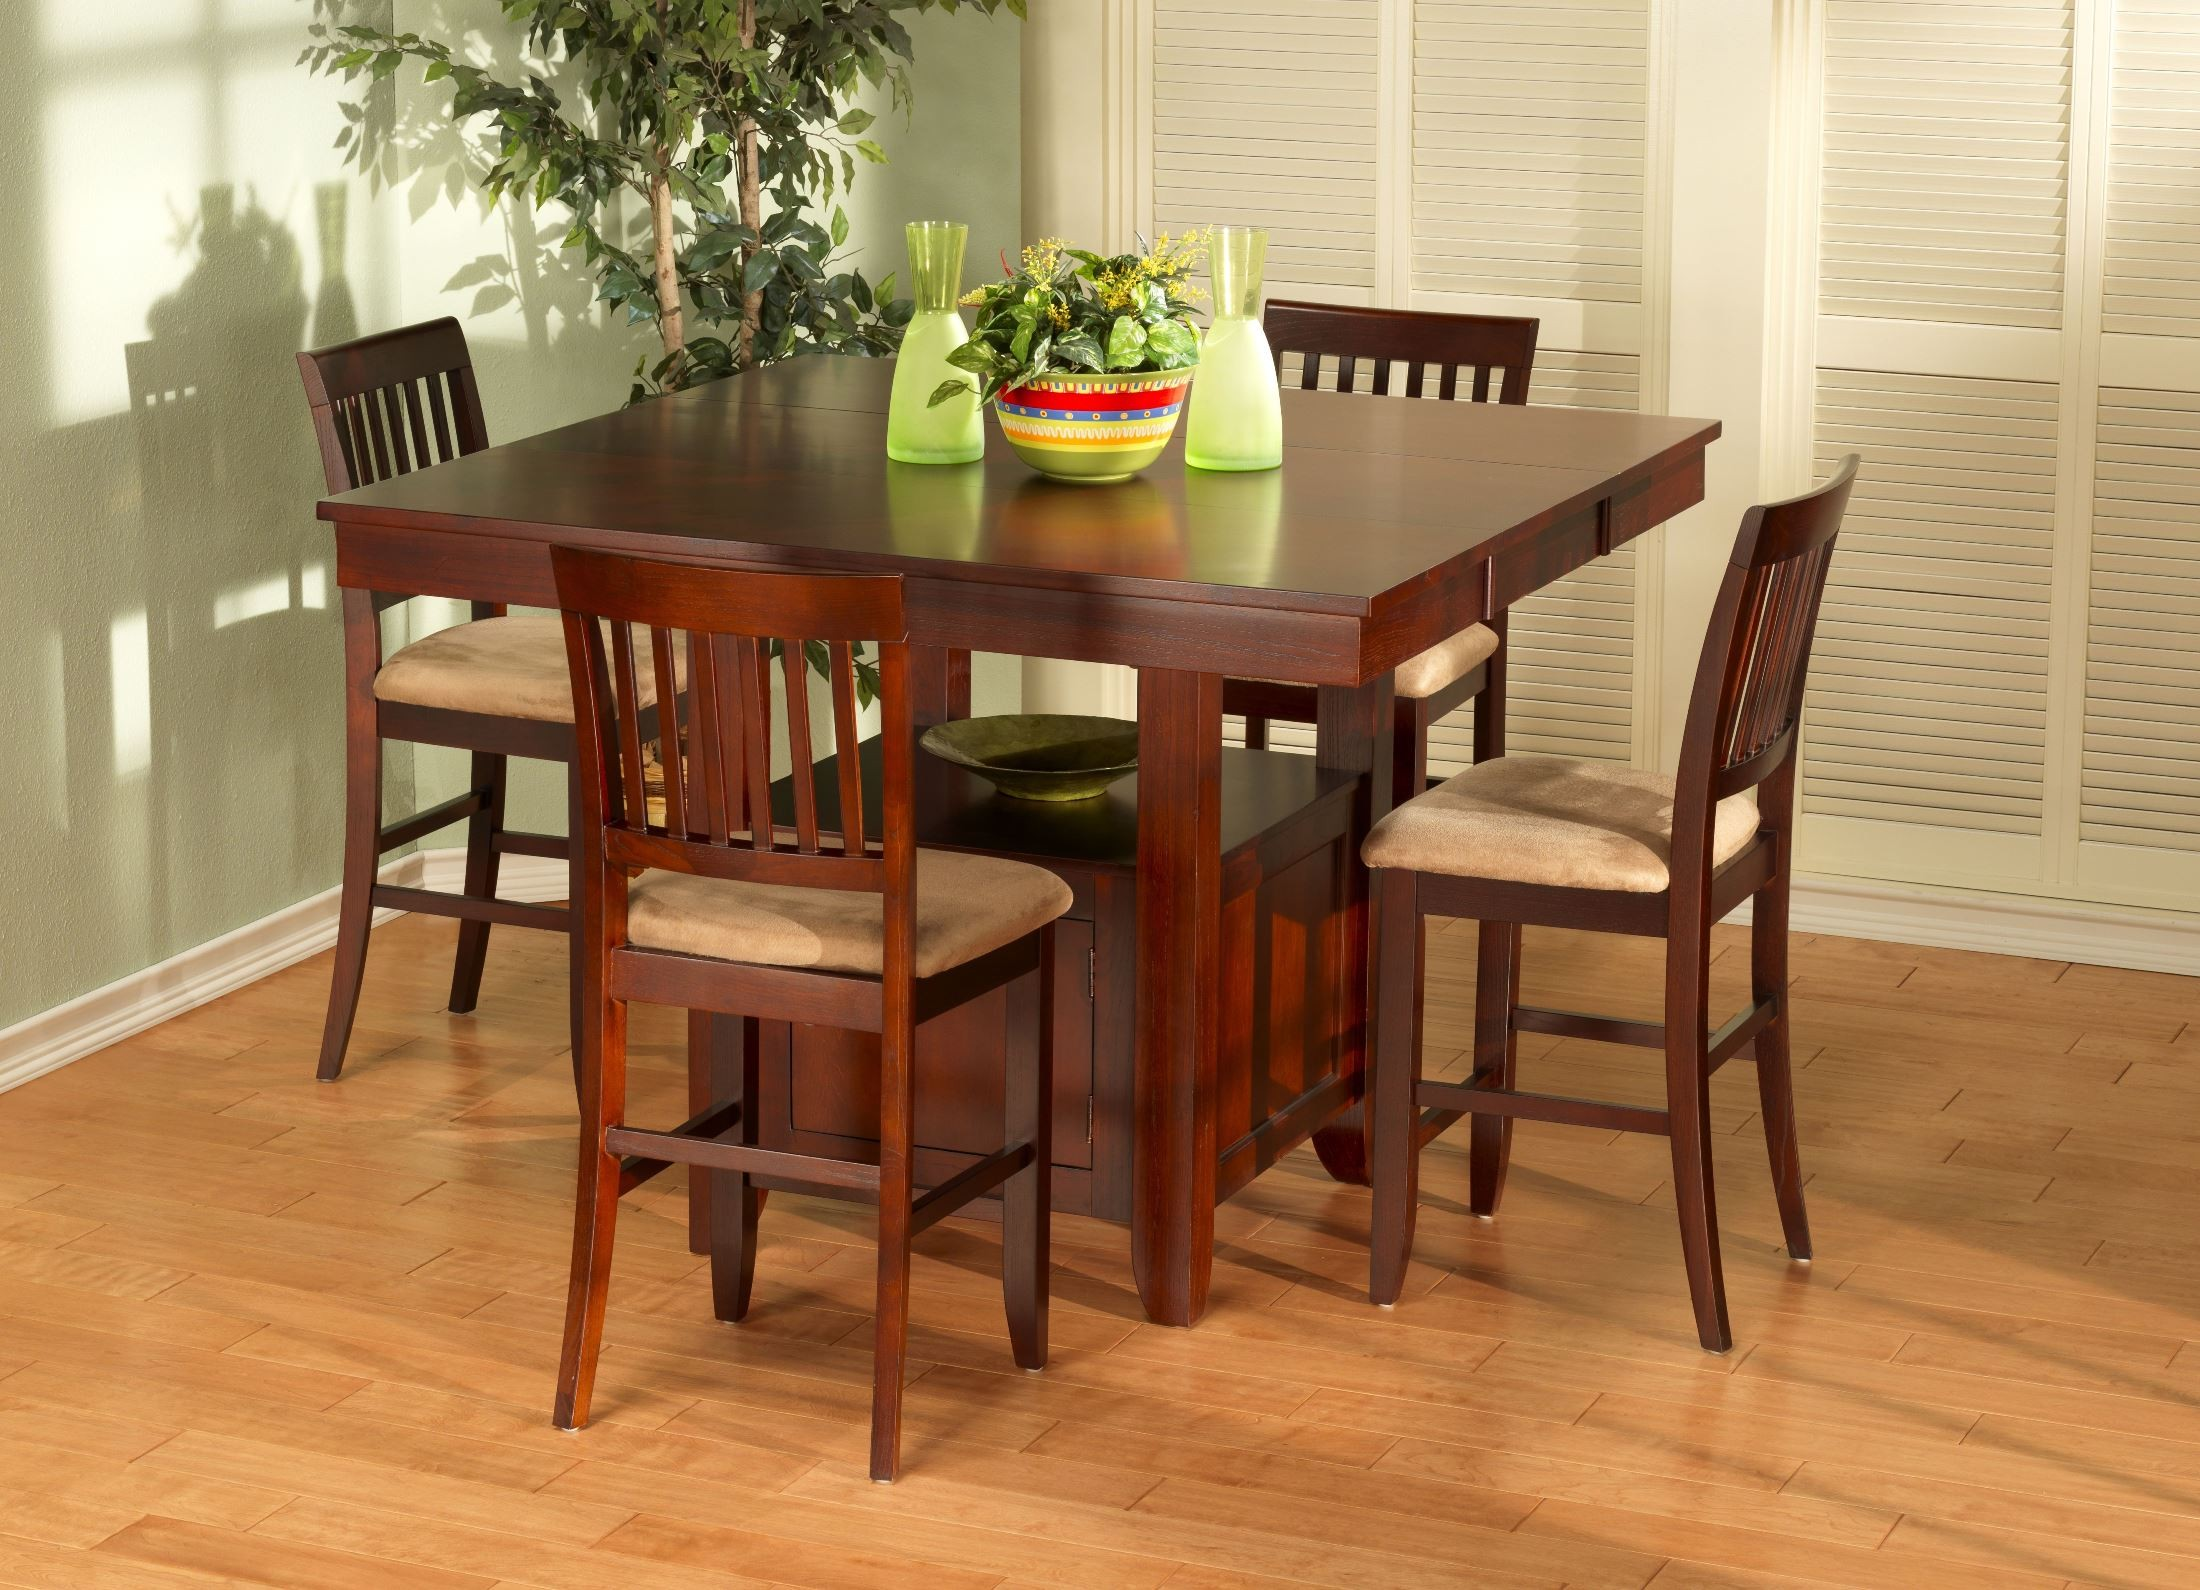 Brendan Counter Height Storage Dining Room Set from New  : 40 071 from colemanfurniture.com size 2200 x 1590 jpeg 620kB